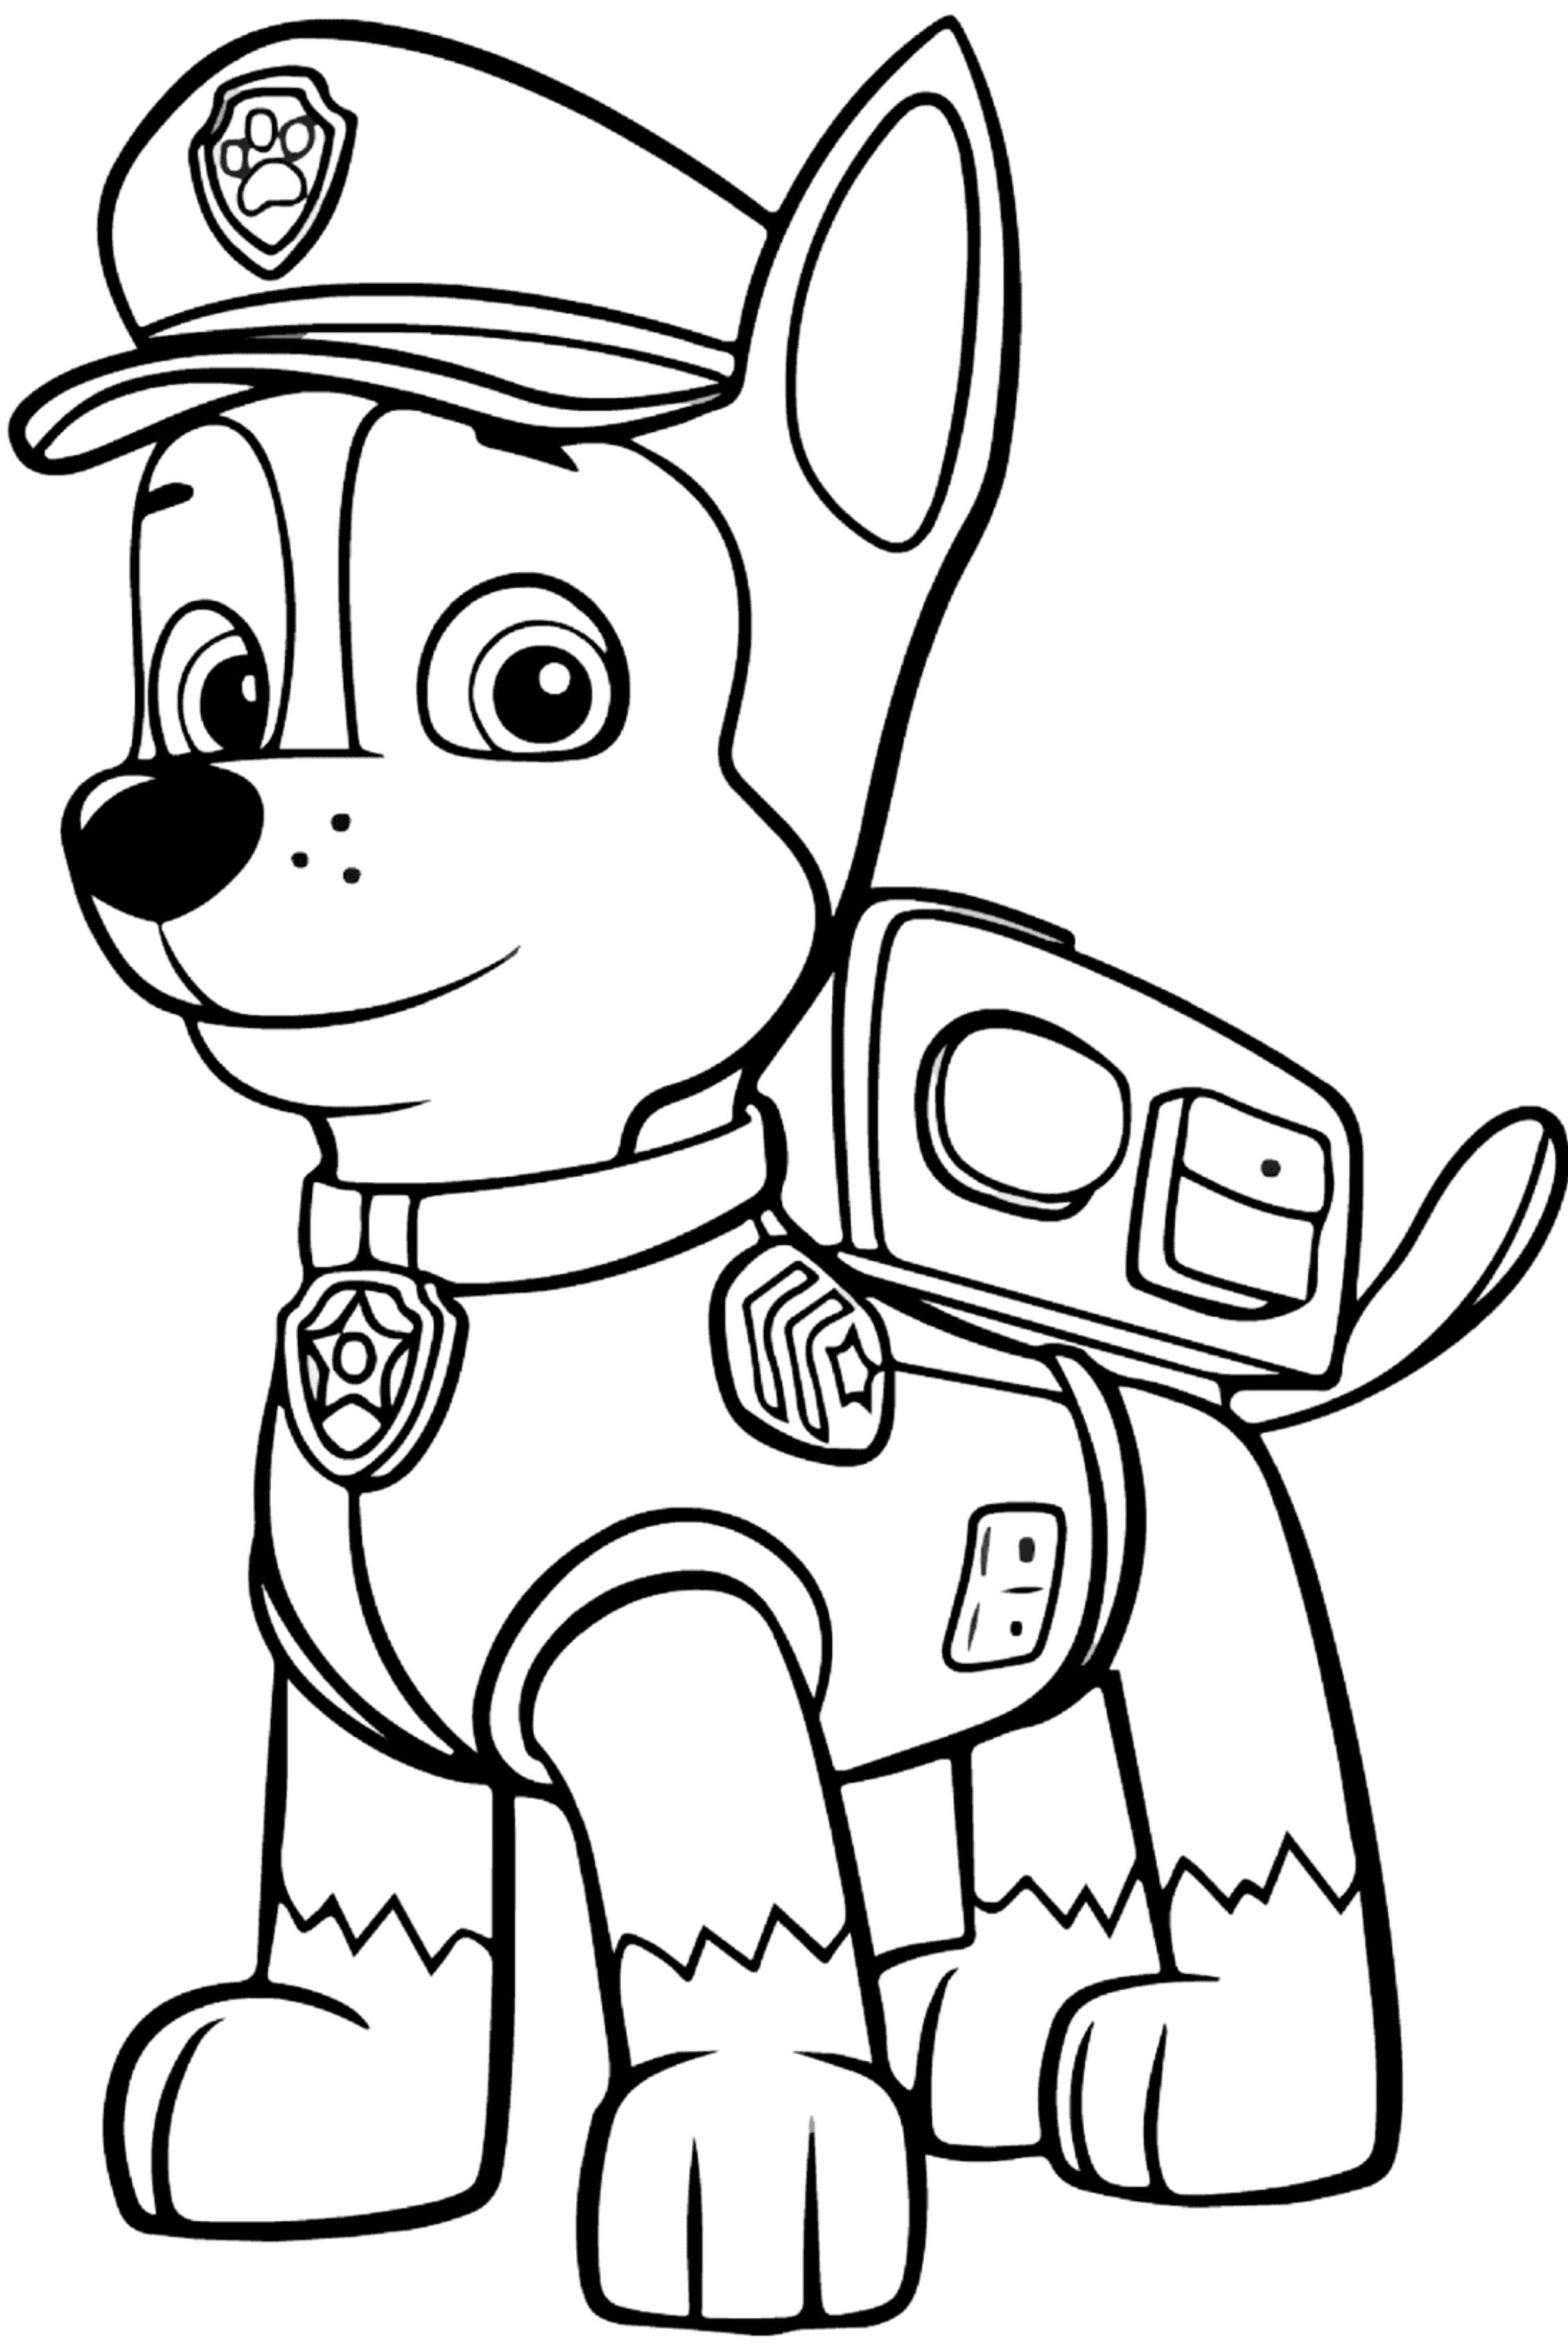 50 Paw Patrol Coloring Pages For Kids Paw Patrol Coloring Pages Paw Patrol Coloring Paw Patrol Printables